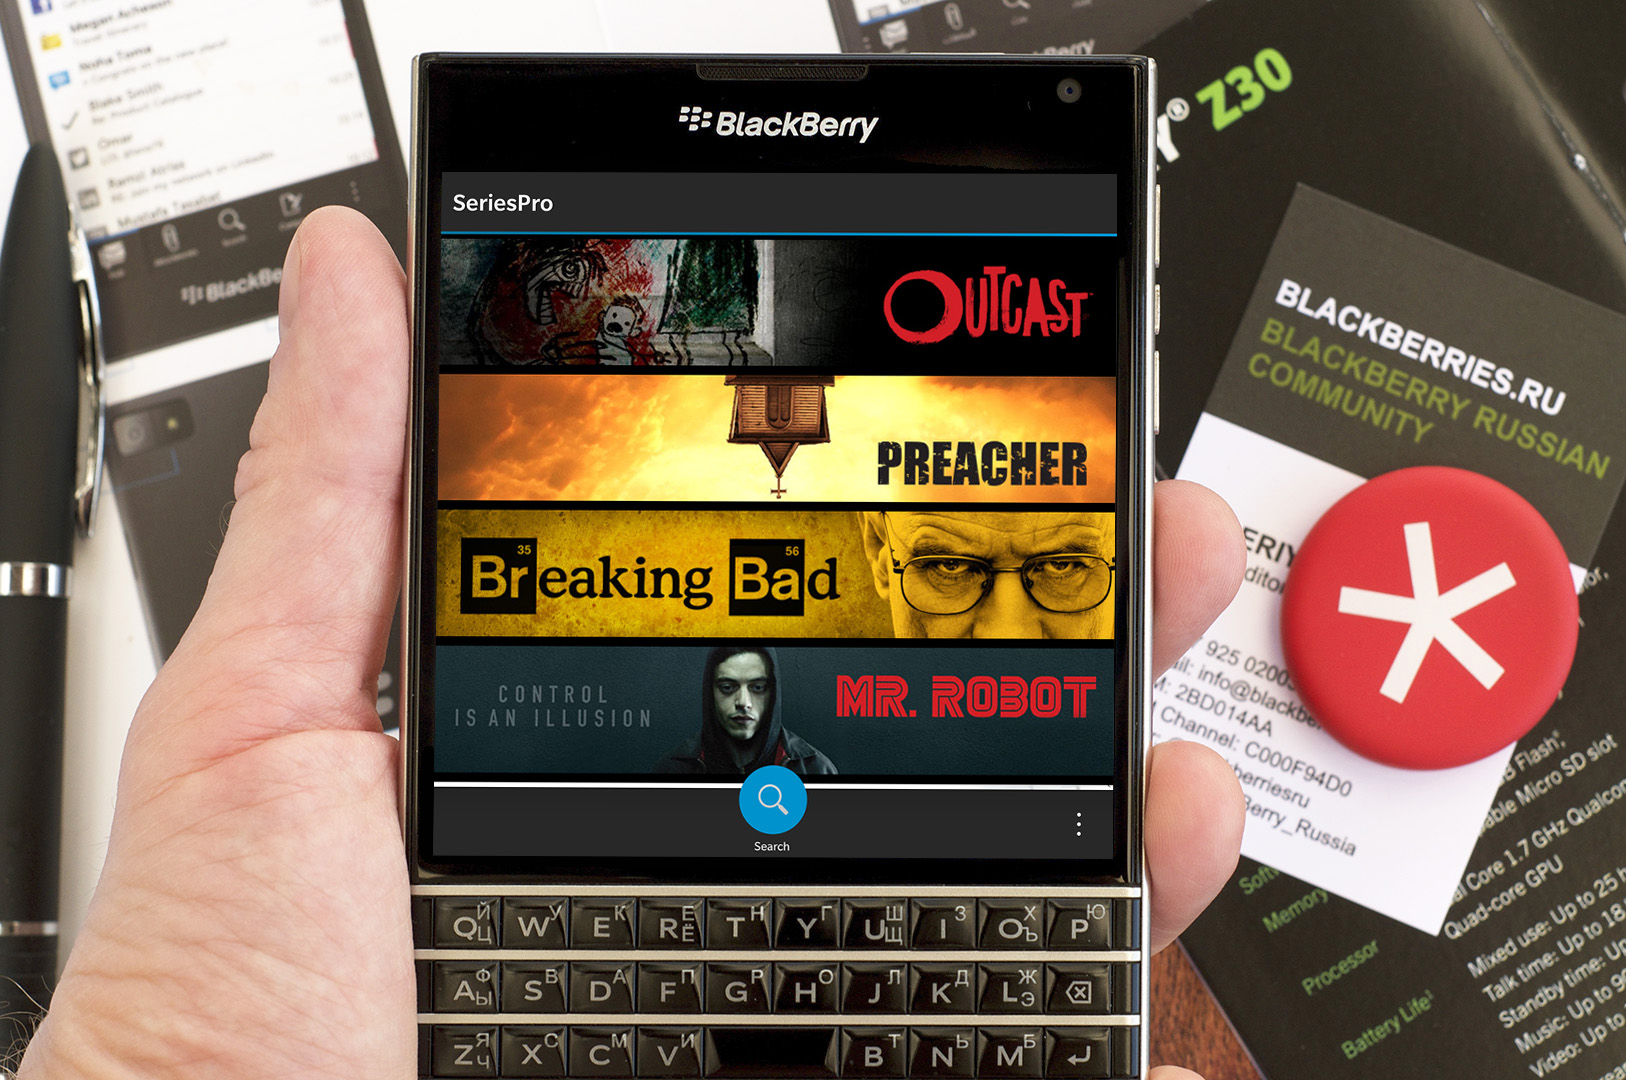 BlackBerry-Passport-Series-Pro